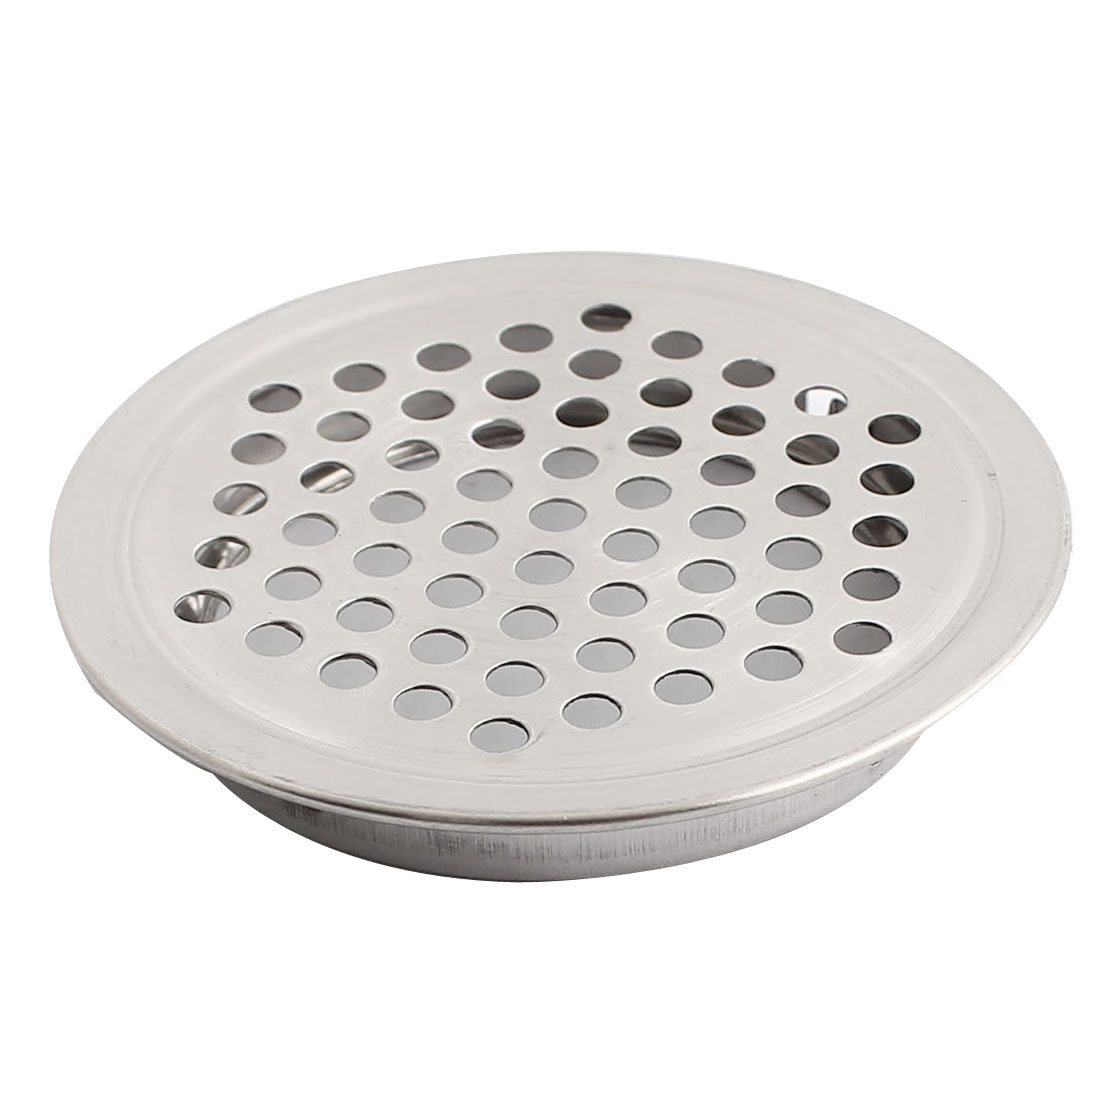 Shoes Cabinet Cupboard 53mm Bottom Dia Air Vent Cover Silver Tone